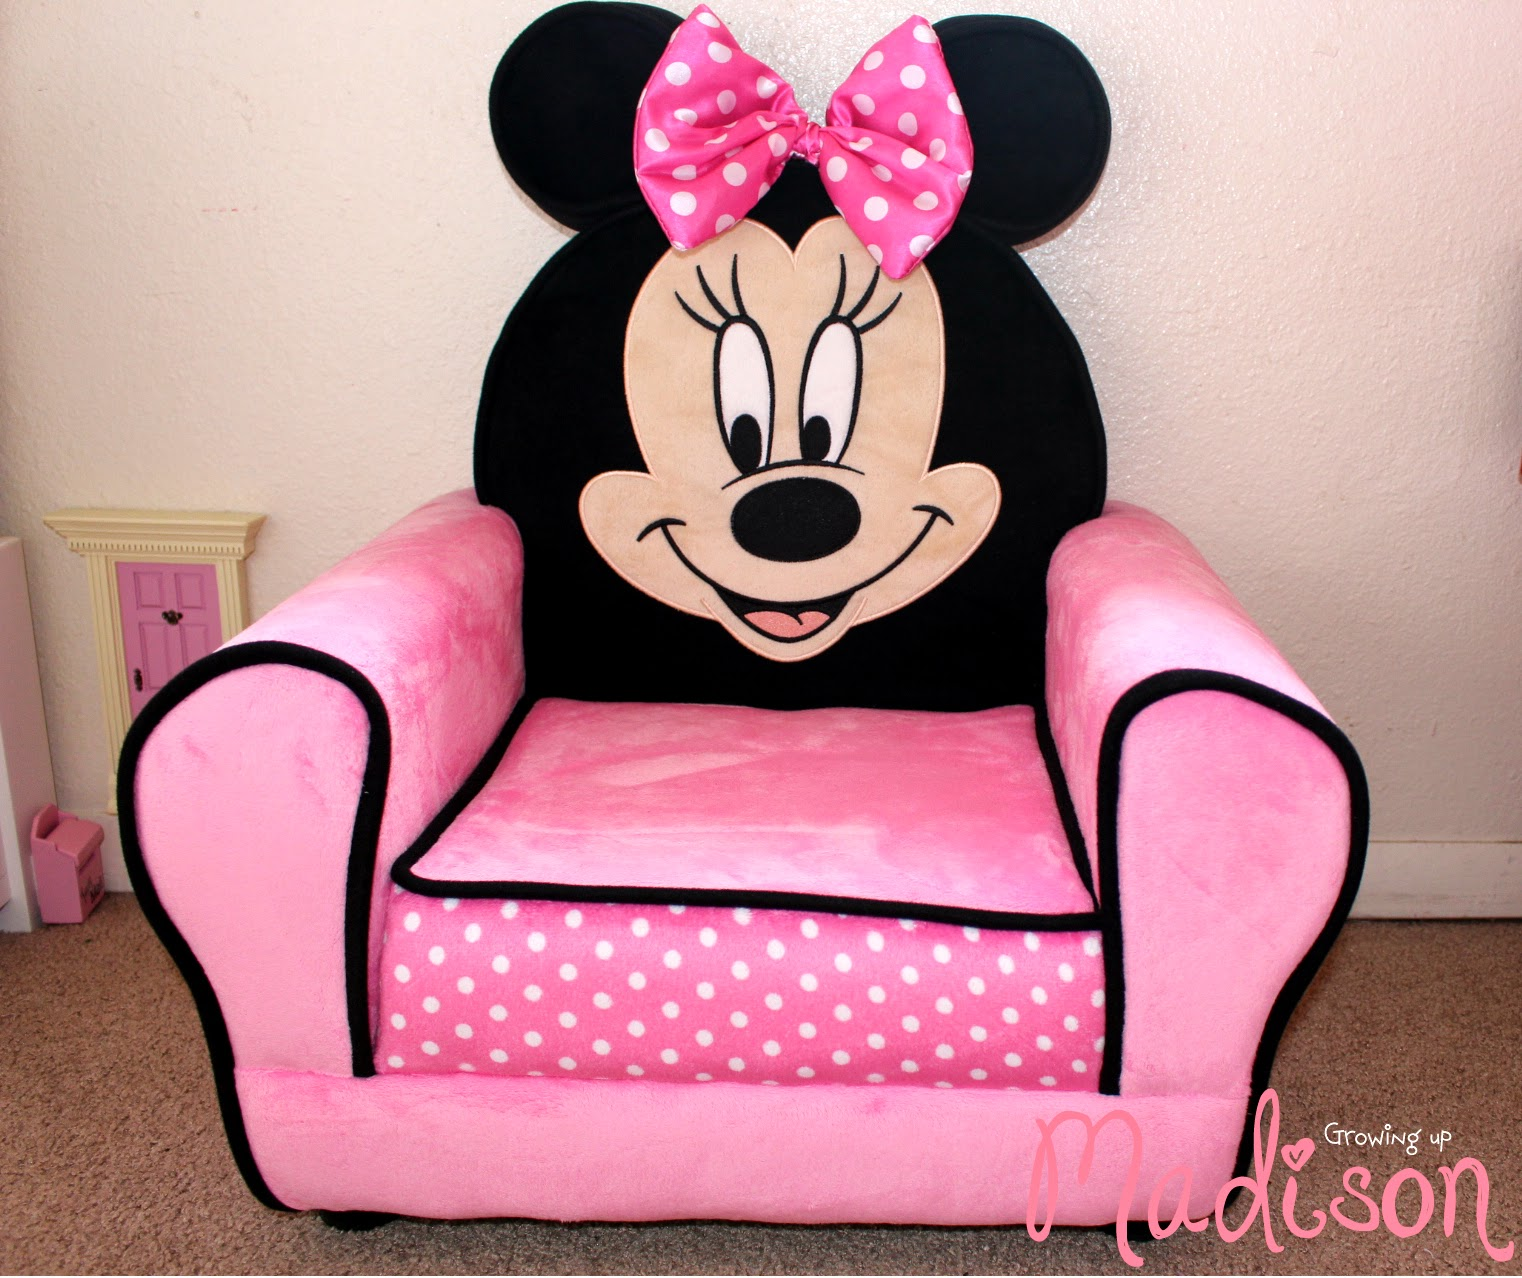 minnie mouse recliner chair target baby shower www picsbud com delta children furniture perfect for any child room jpg 1522x1278